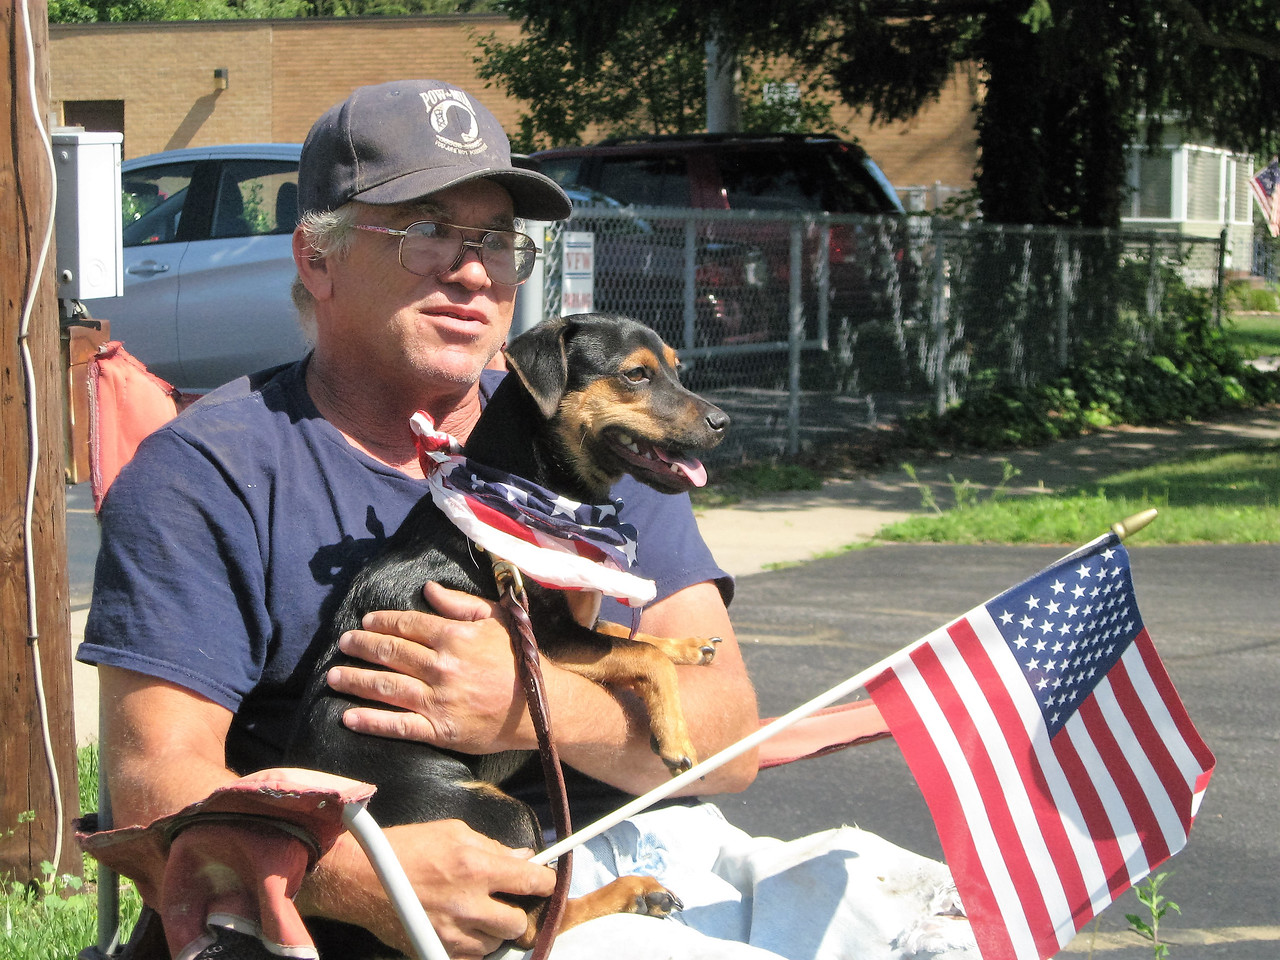 BOB SANDRICK / GAZETTE John Rowen and his buddy Louie, who's only about 6 months old, found a good spot for Tuesday's Fourth of July parade in Liverpool Township. Rowen and Louie live in Columbia Station.